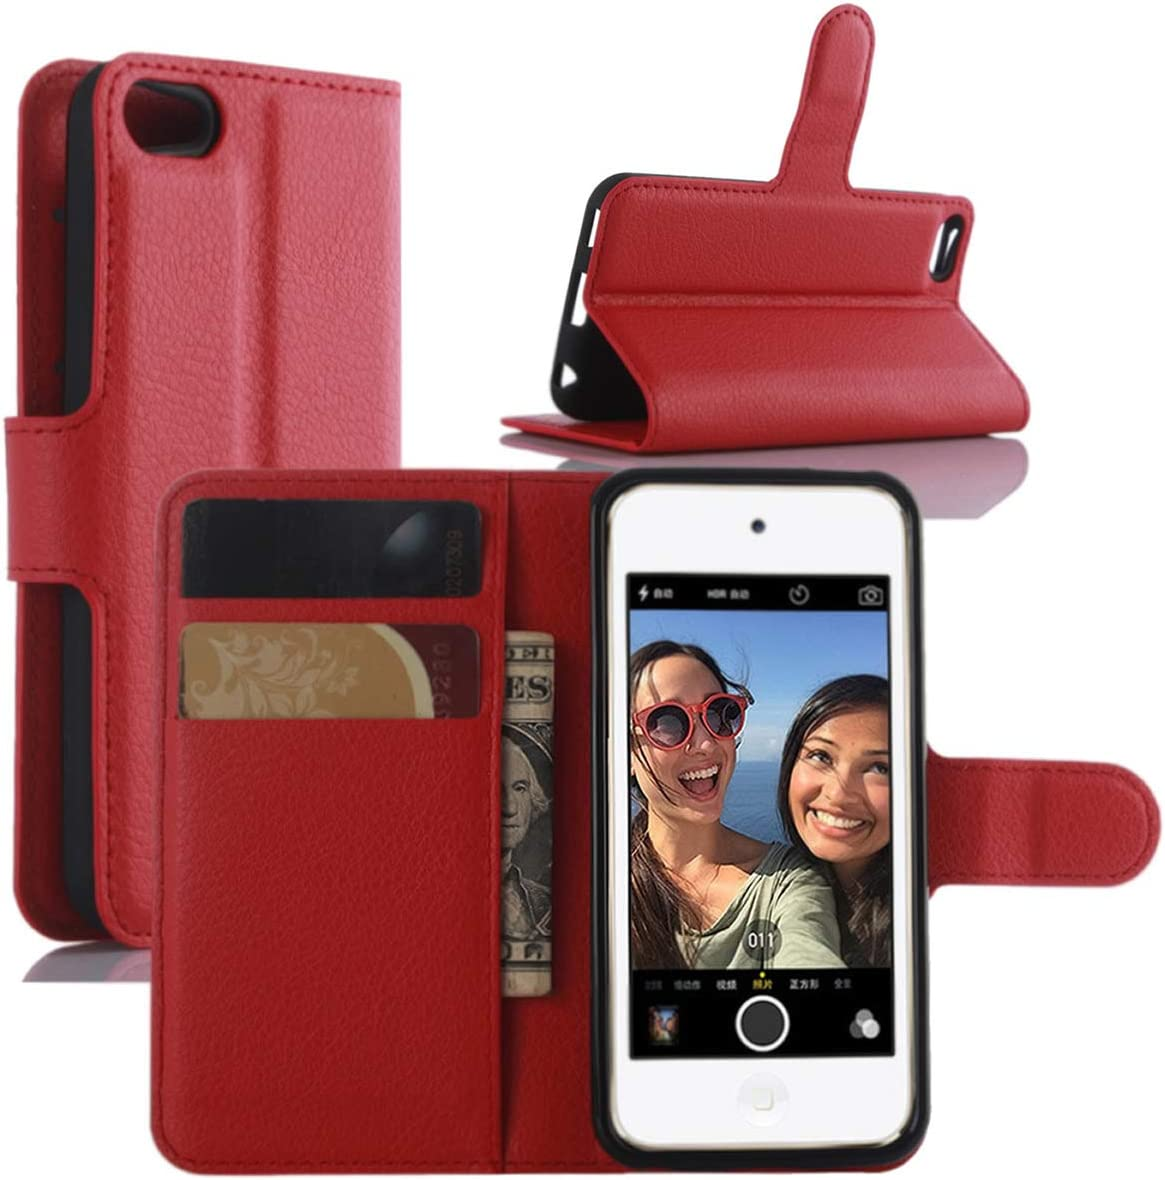 HualuBro iPod Touch 7 Case, Premium PU Leather Wallet Flip Folio Shockproof Phone Case Cover with [Kickstand] [Card Slots] [Magnetic Closure] for Apple iPod Touch 7th Generation 2019 (Red)